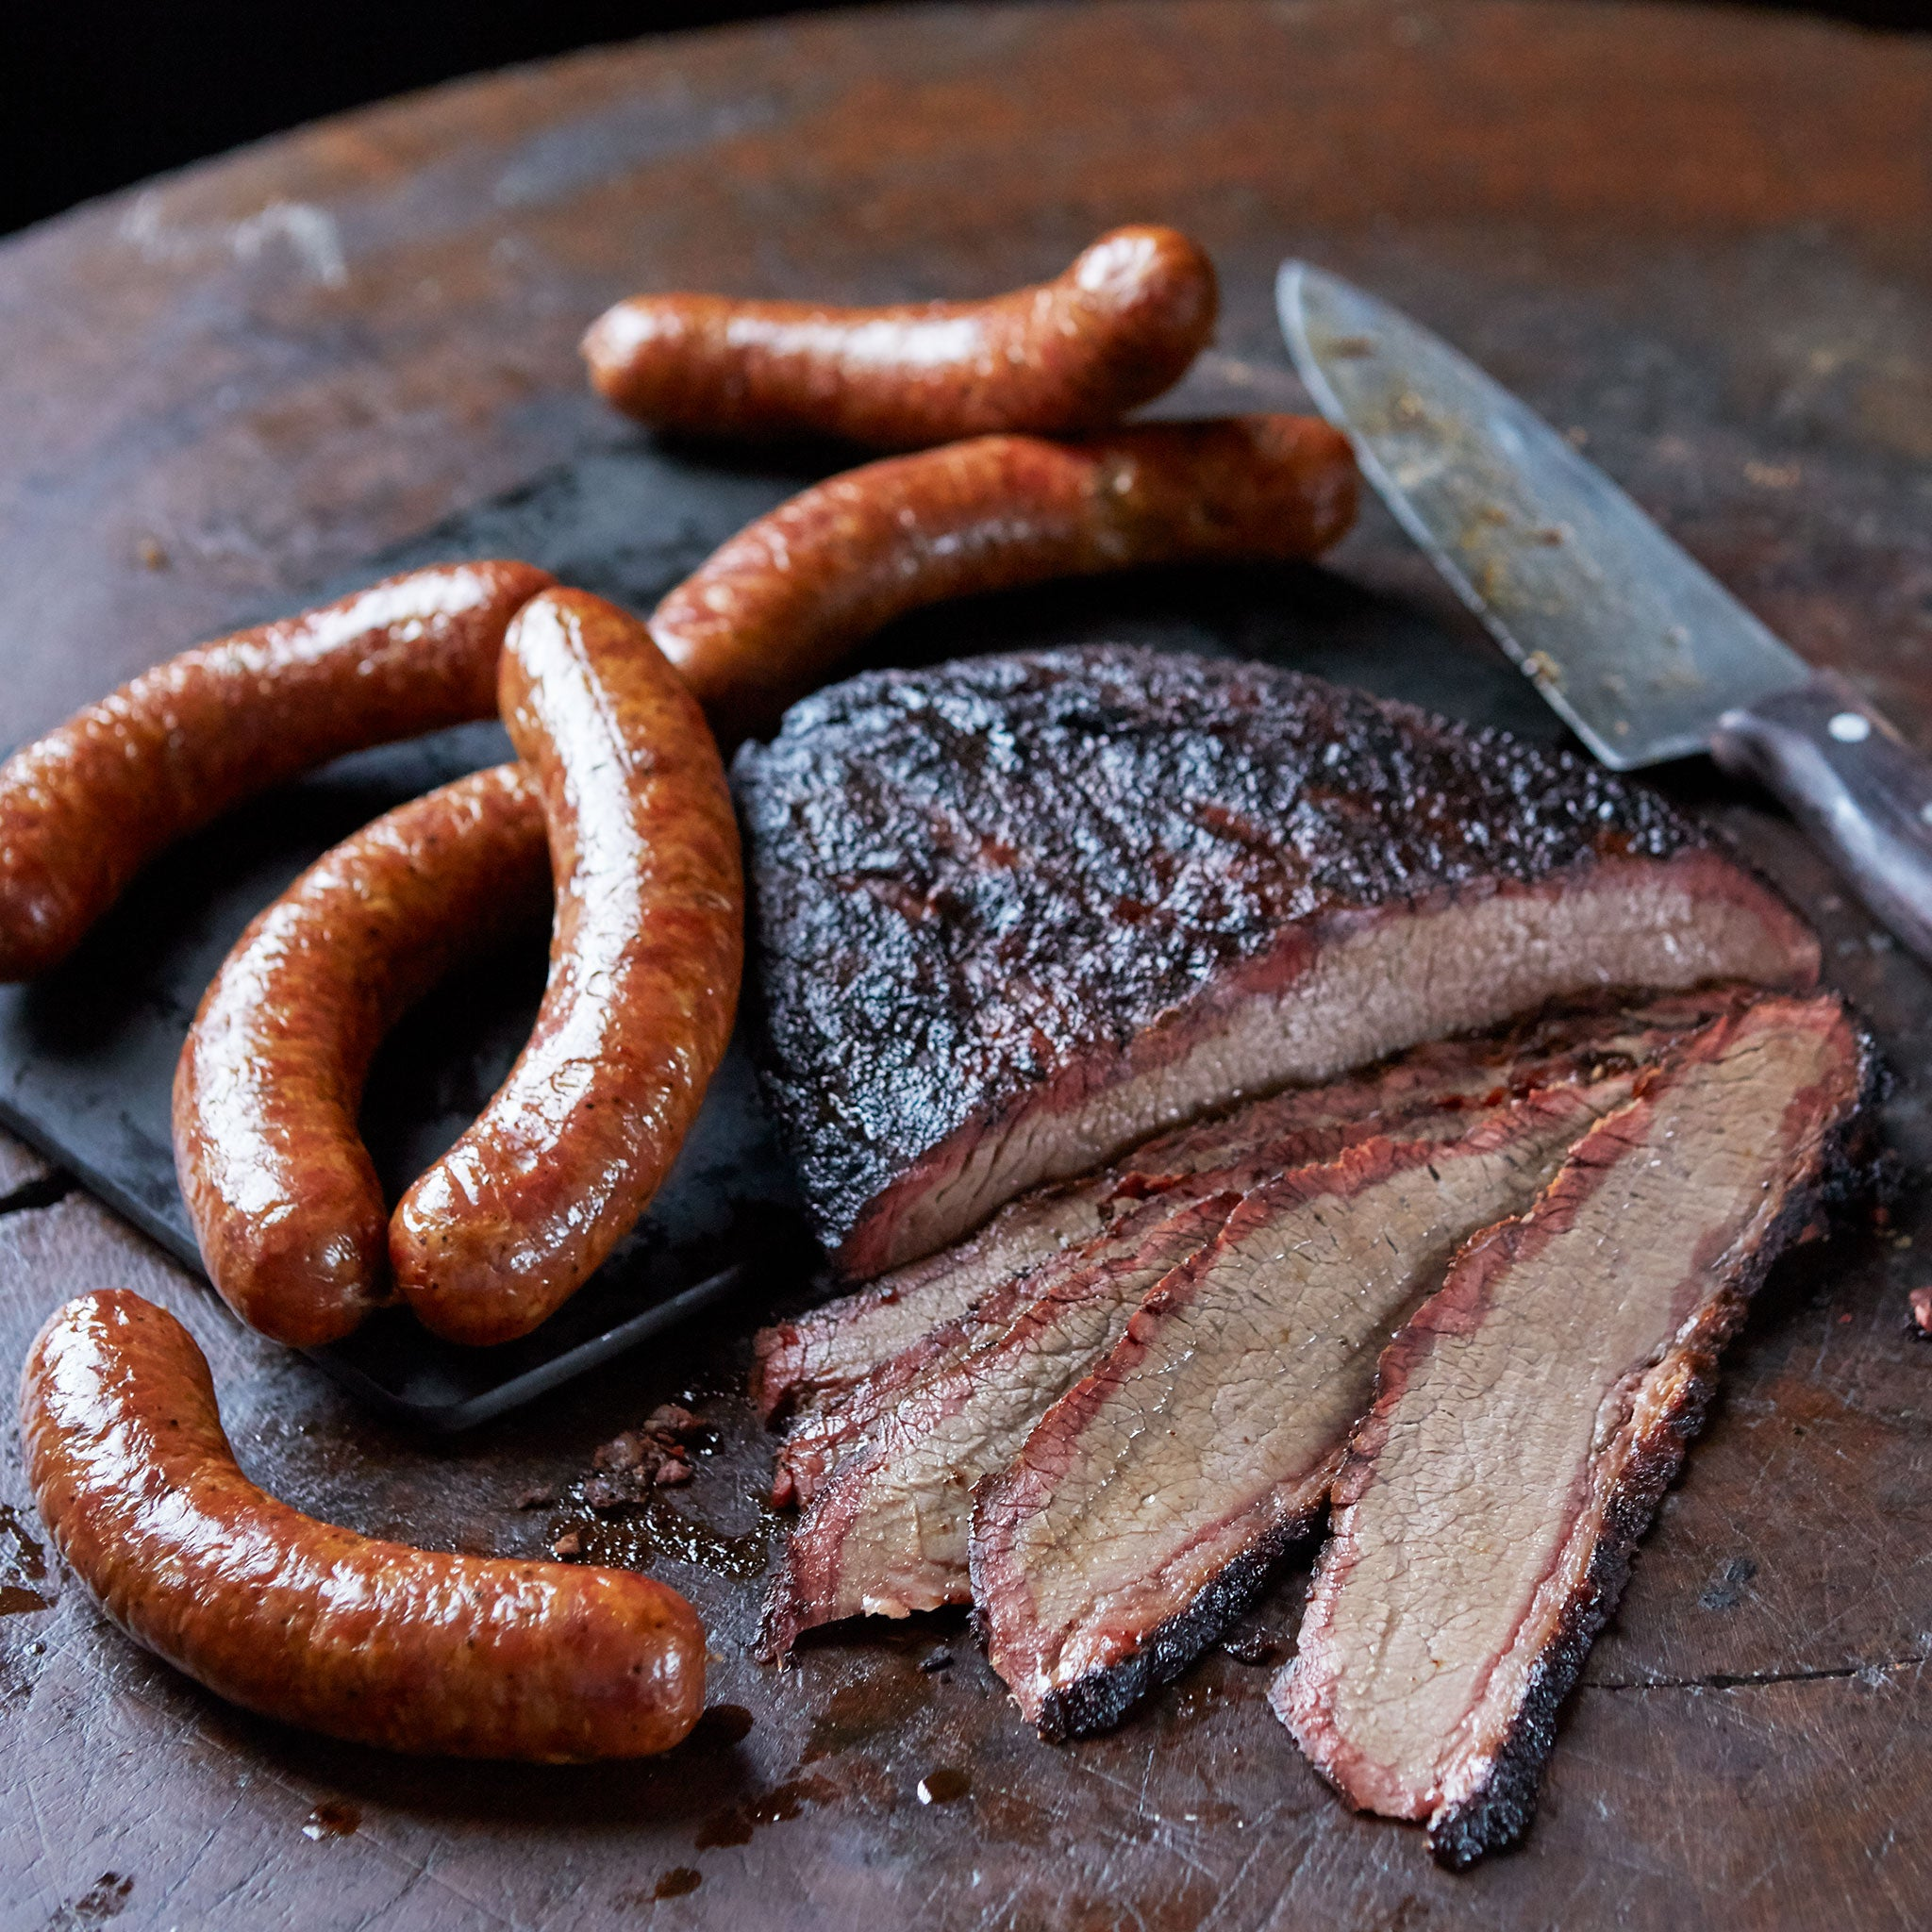 Brisket & Sausage, Joe's Kansas City Bar-B-Que, Joe's KC, BBQ, Barbecue, Kansas City, Ship BBQ